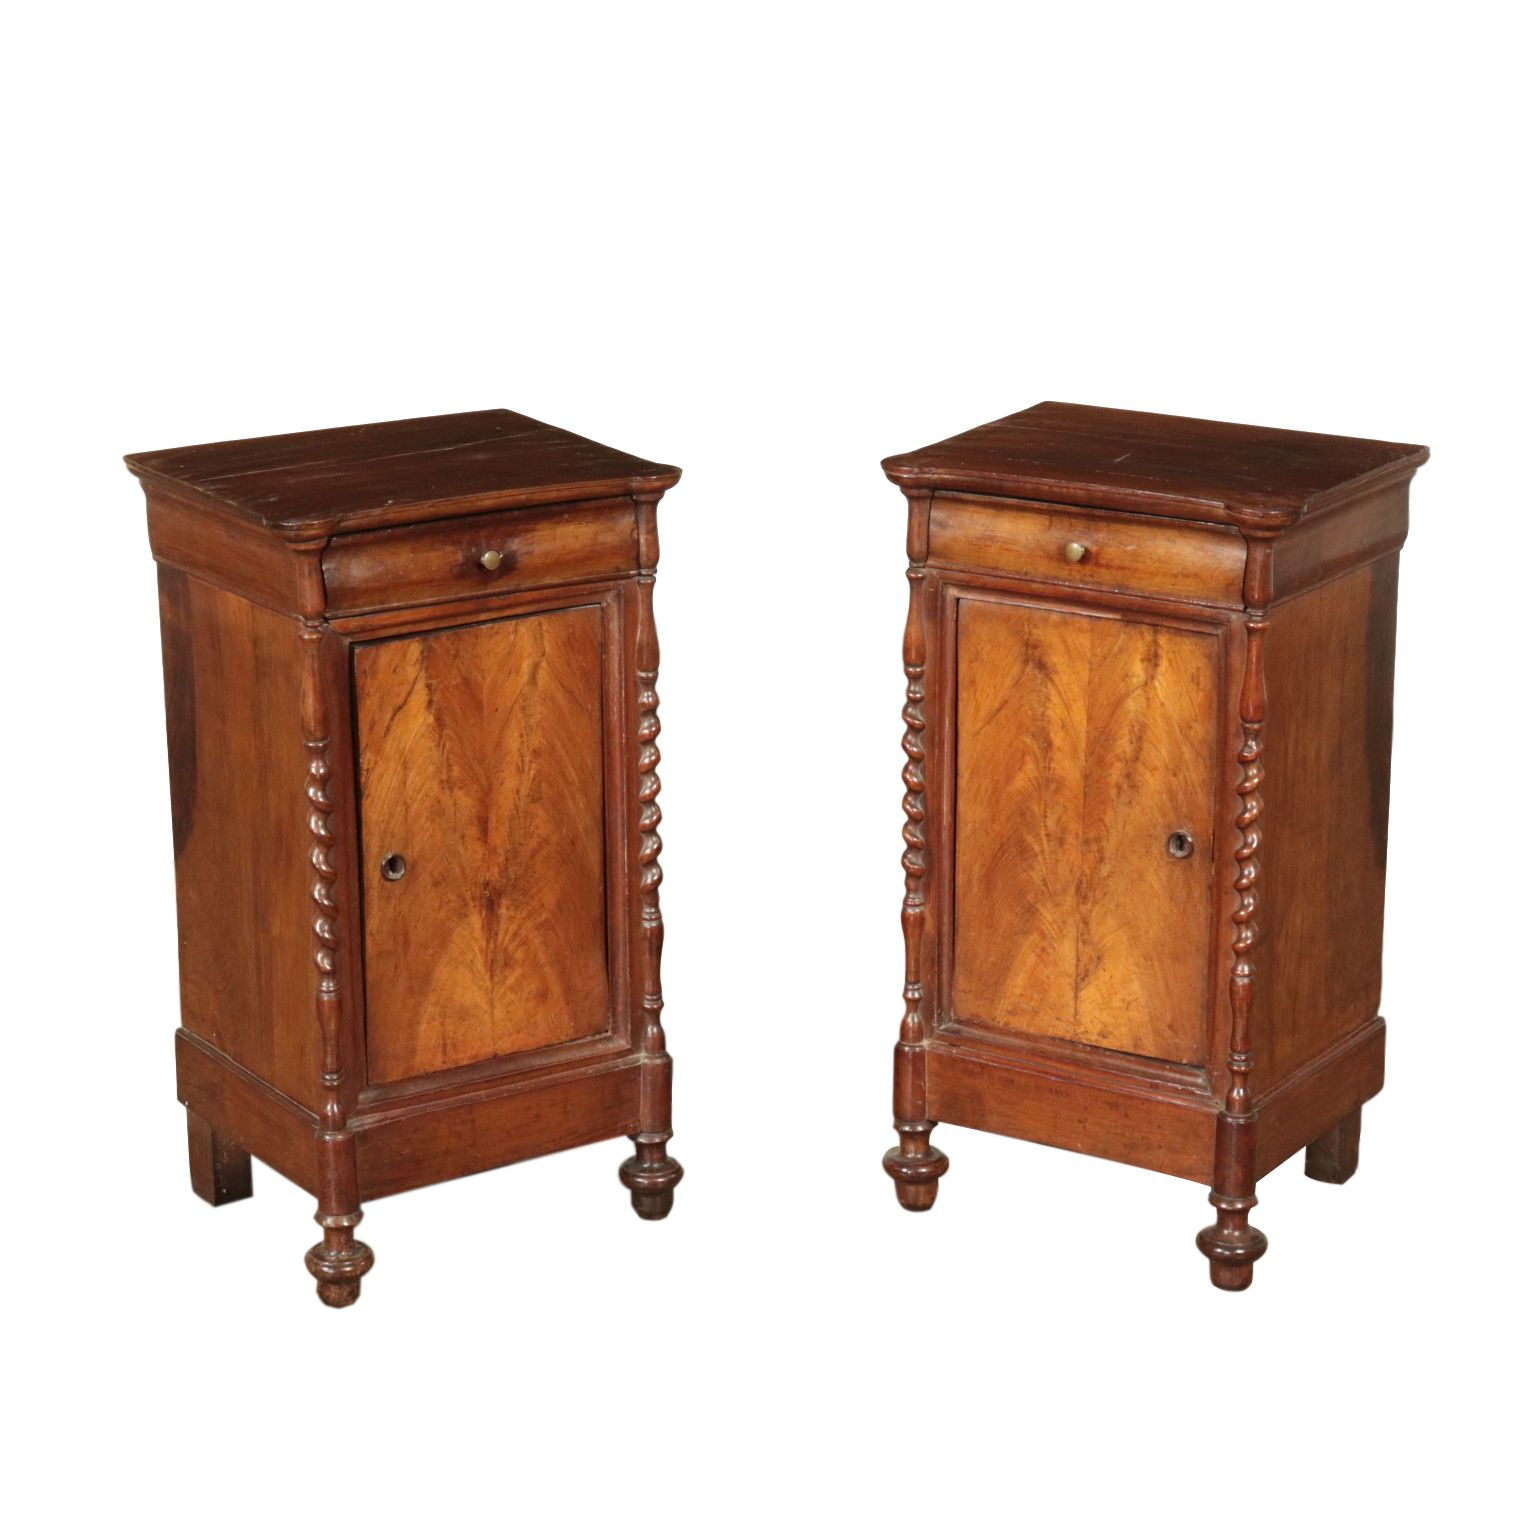 Best Pair Of Walnut Nightstands Italy Mid 19Th Century 640 x 480